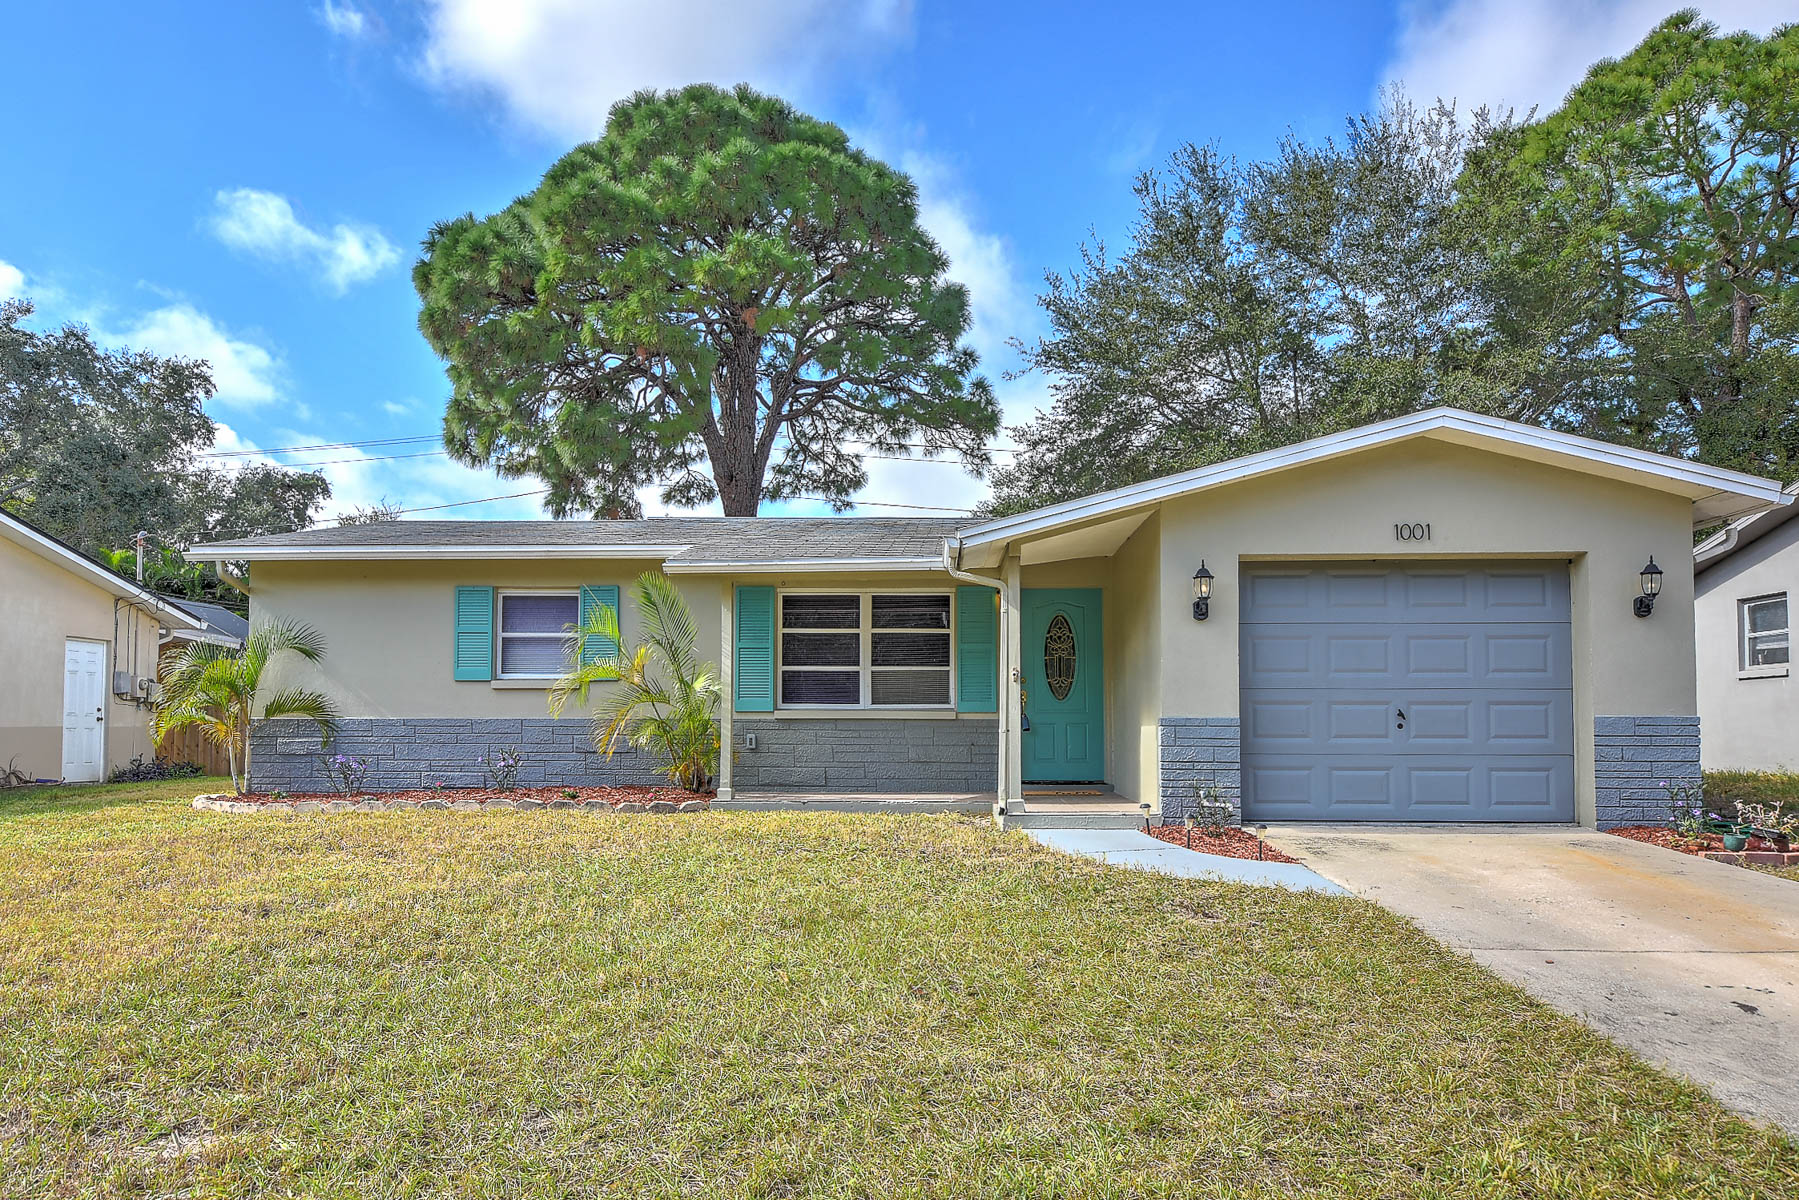 NEW TO THE MARKET: 1001 SAN MARCO DRIVE, LARGO, FL 33770